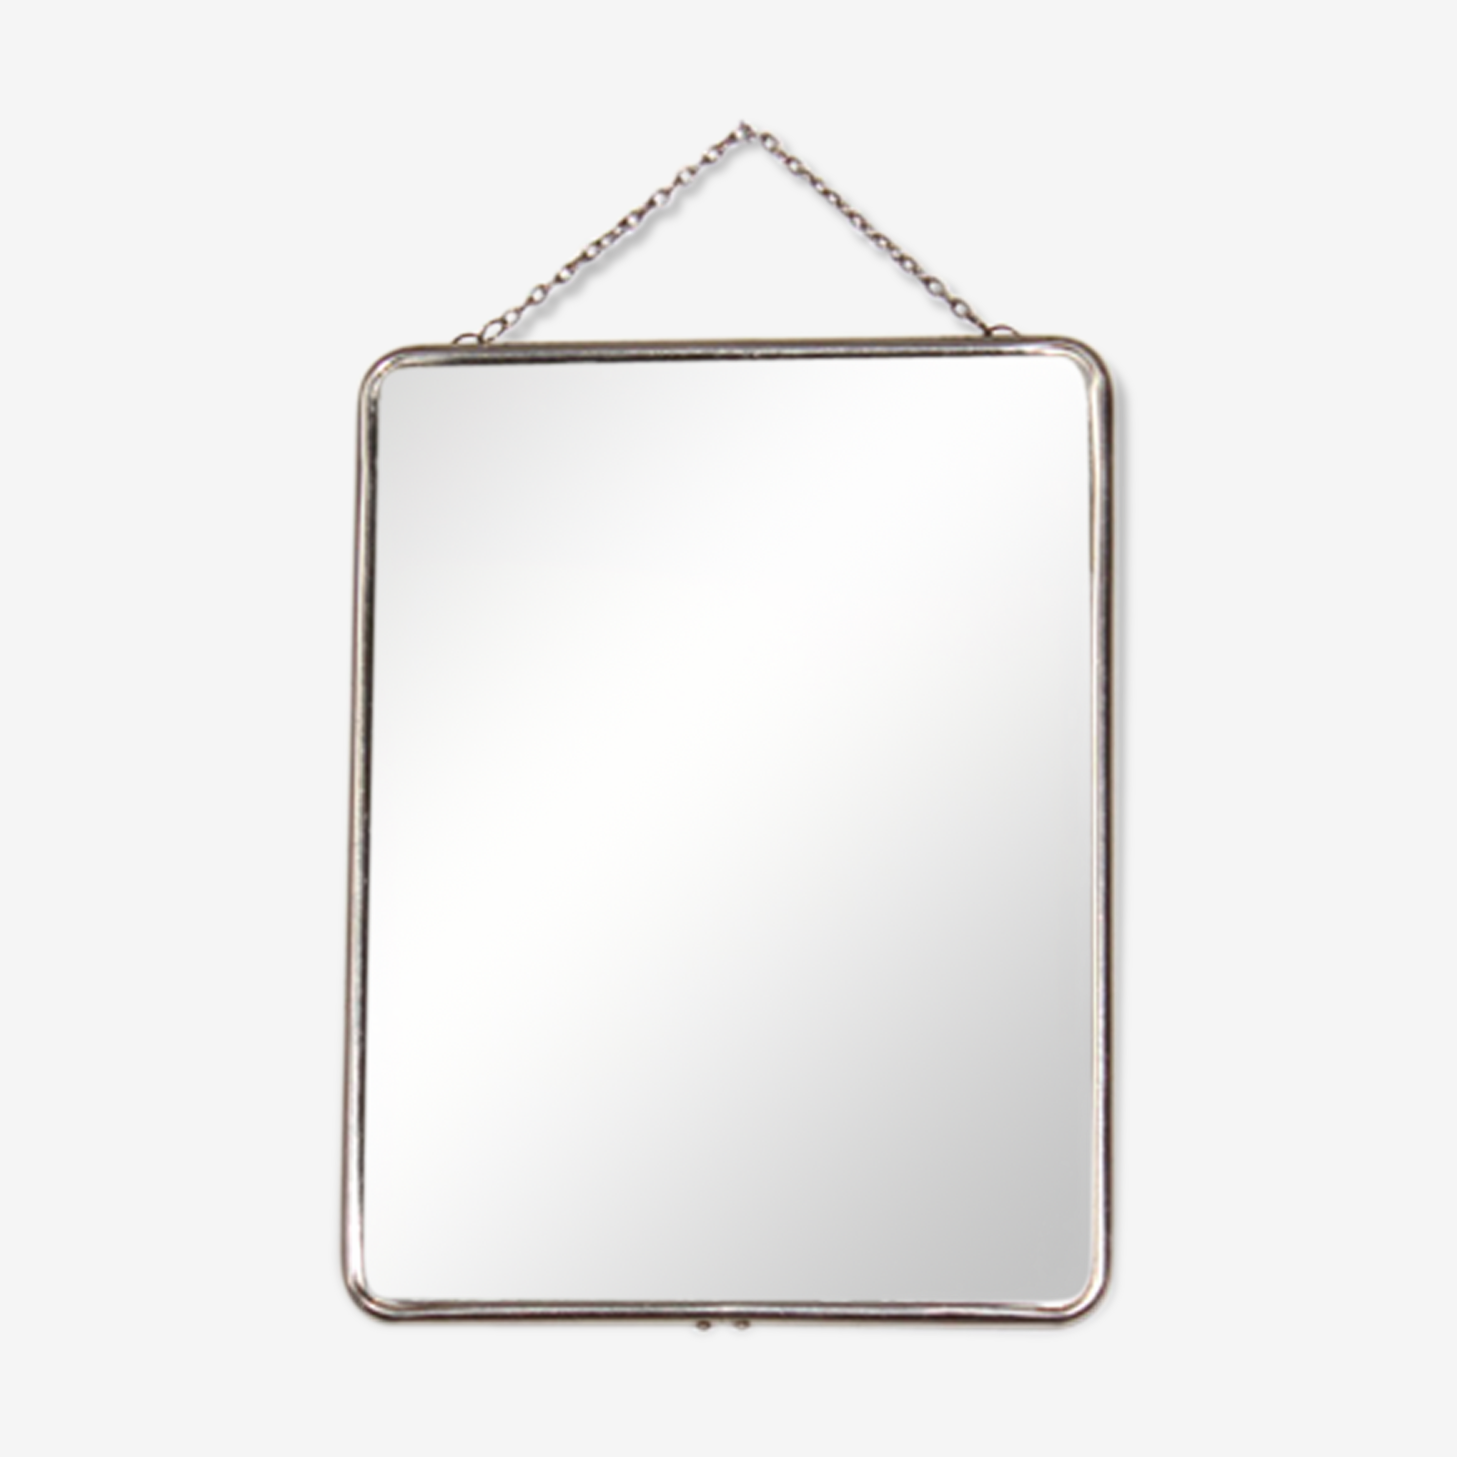 Barber chained mirror 27 x 21 cm